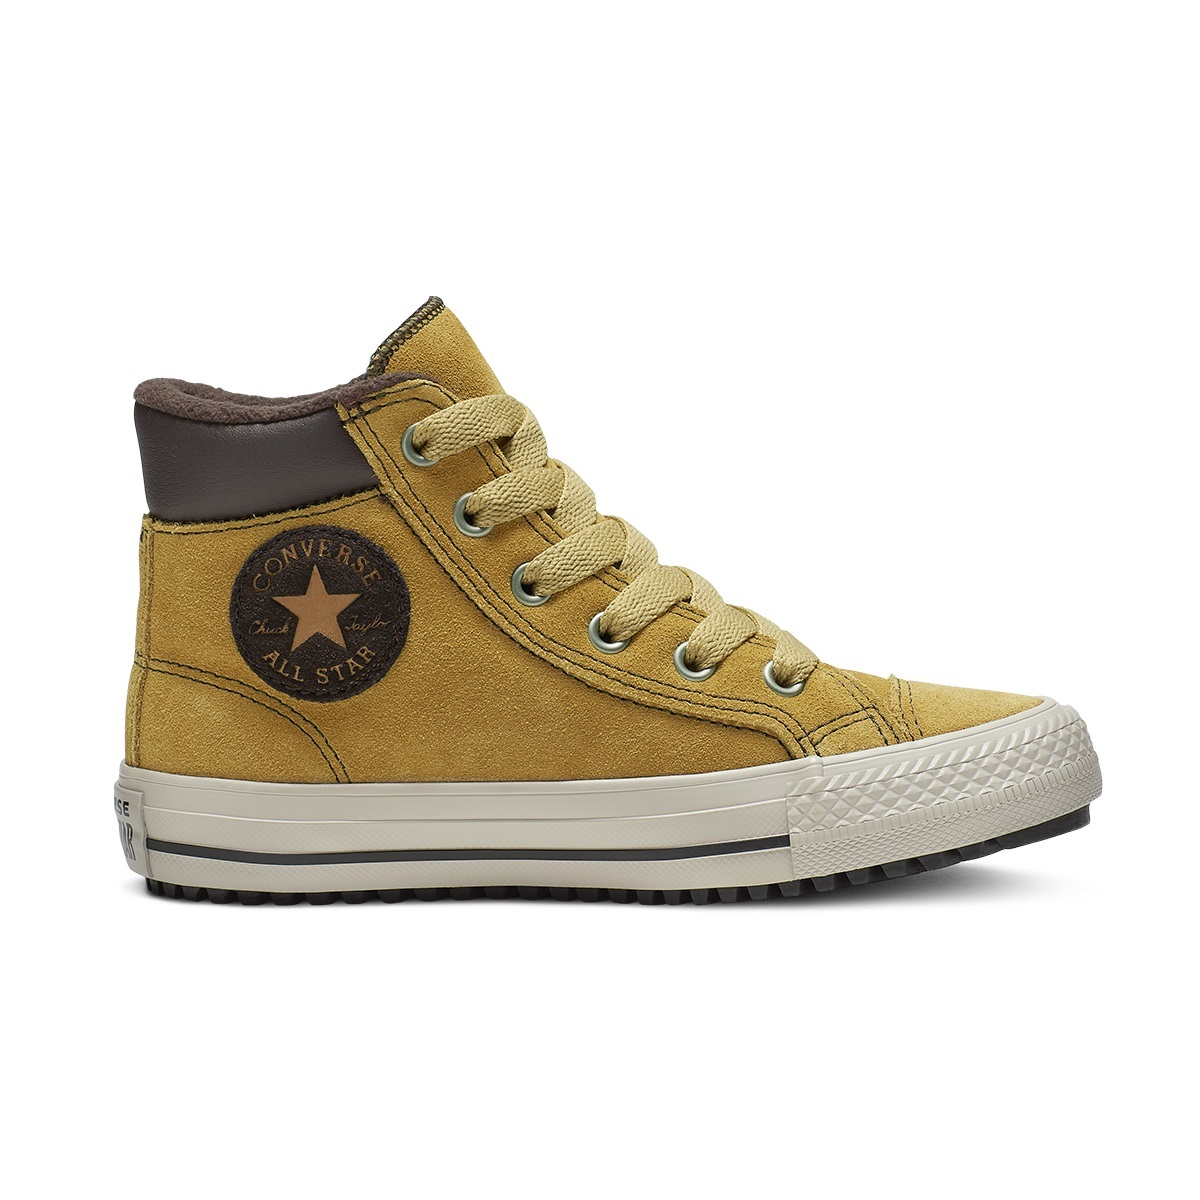 All Star Chuck Taylor PC Boot High Top (665163C)